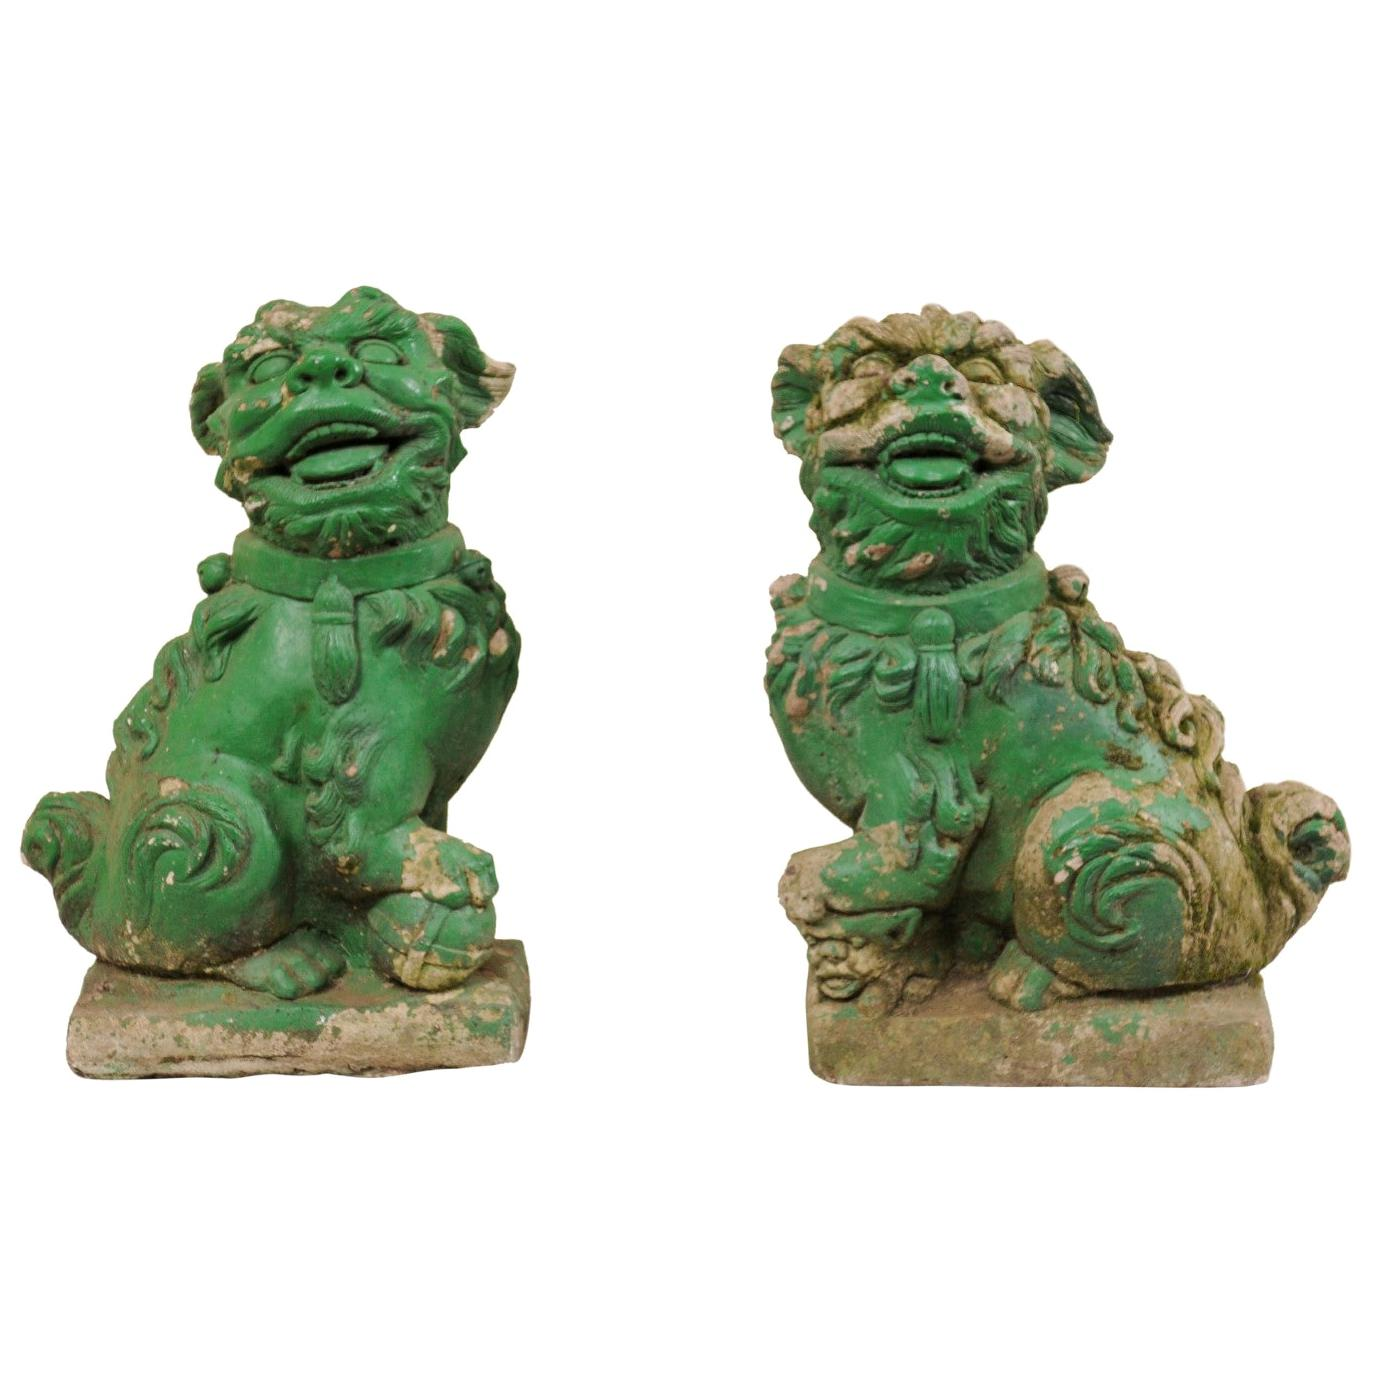 Pair of European Foo Dog Statues with their Original Green Paint